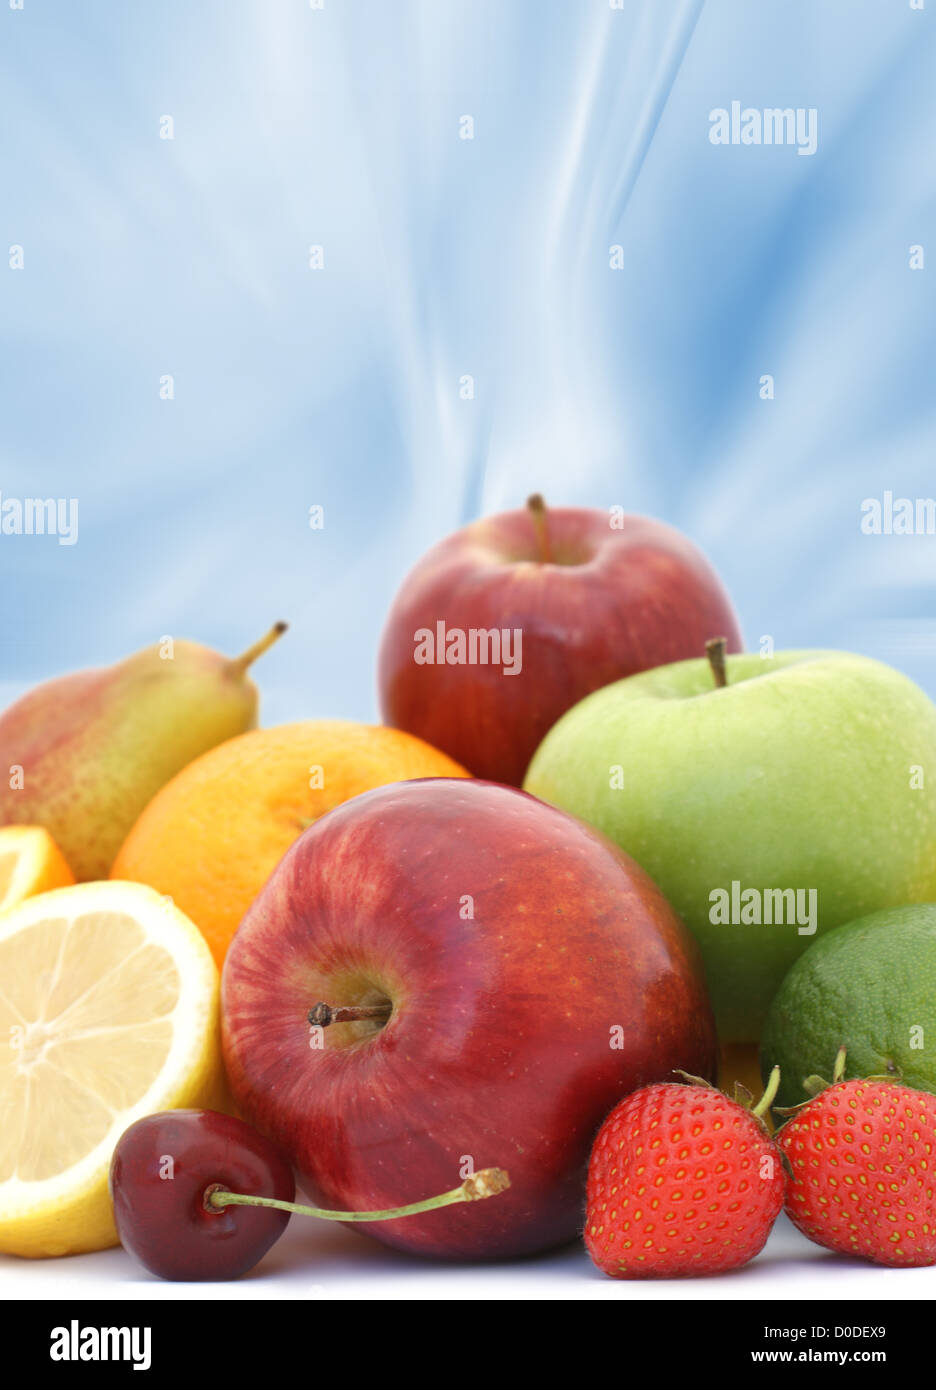 Display of fresh fruit on abstract blue background - Stock Image